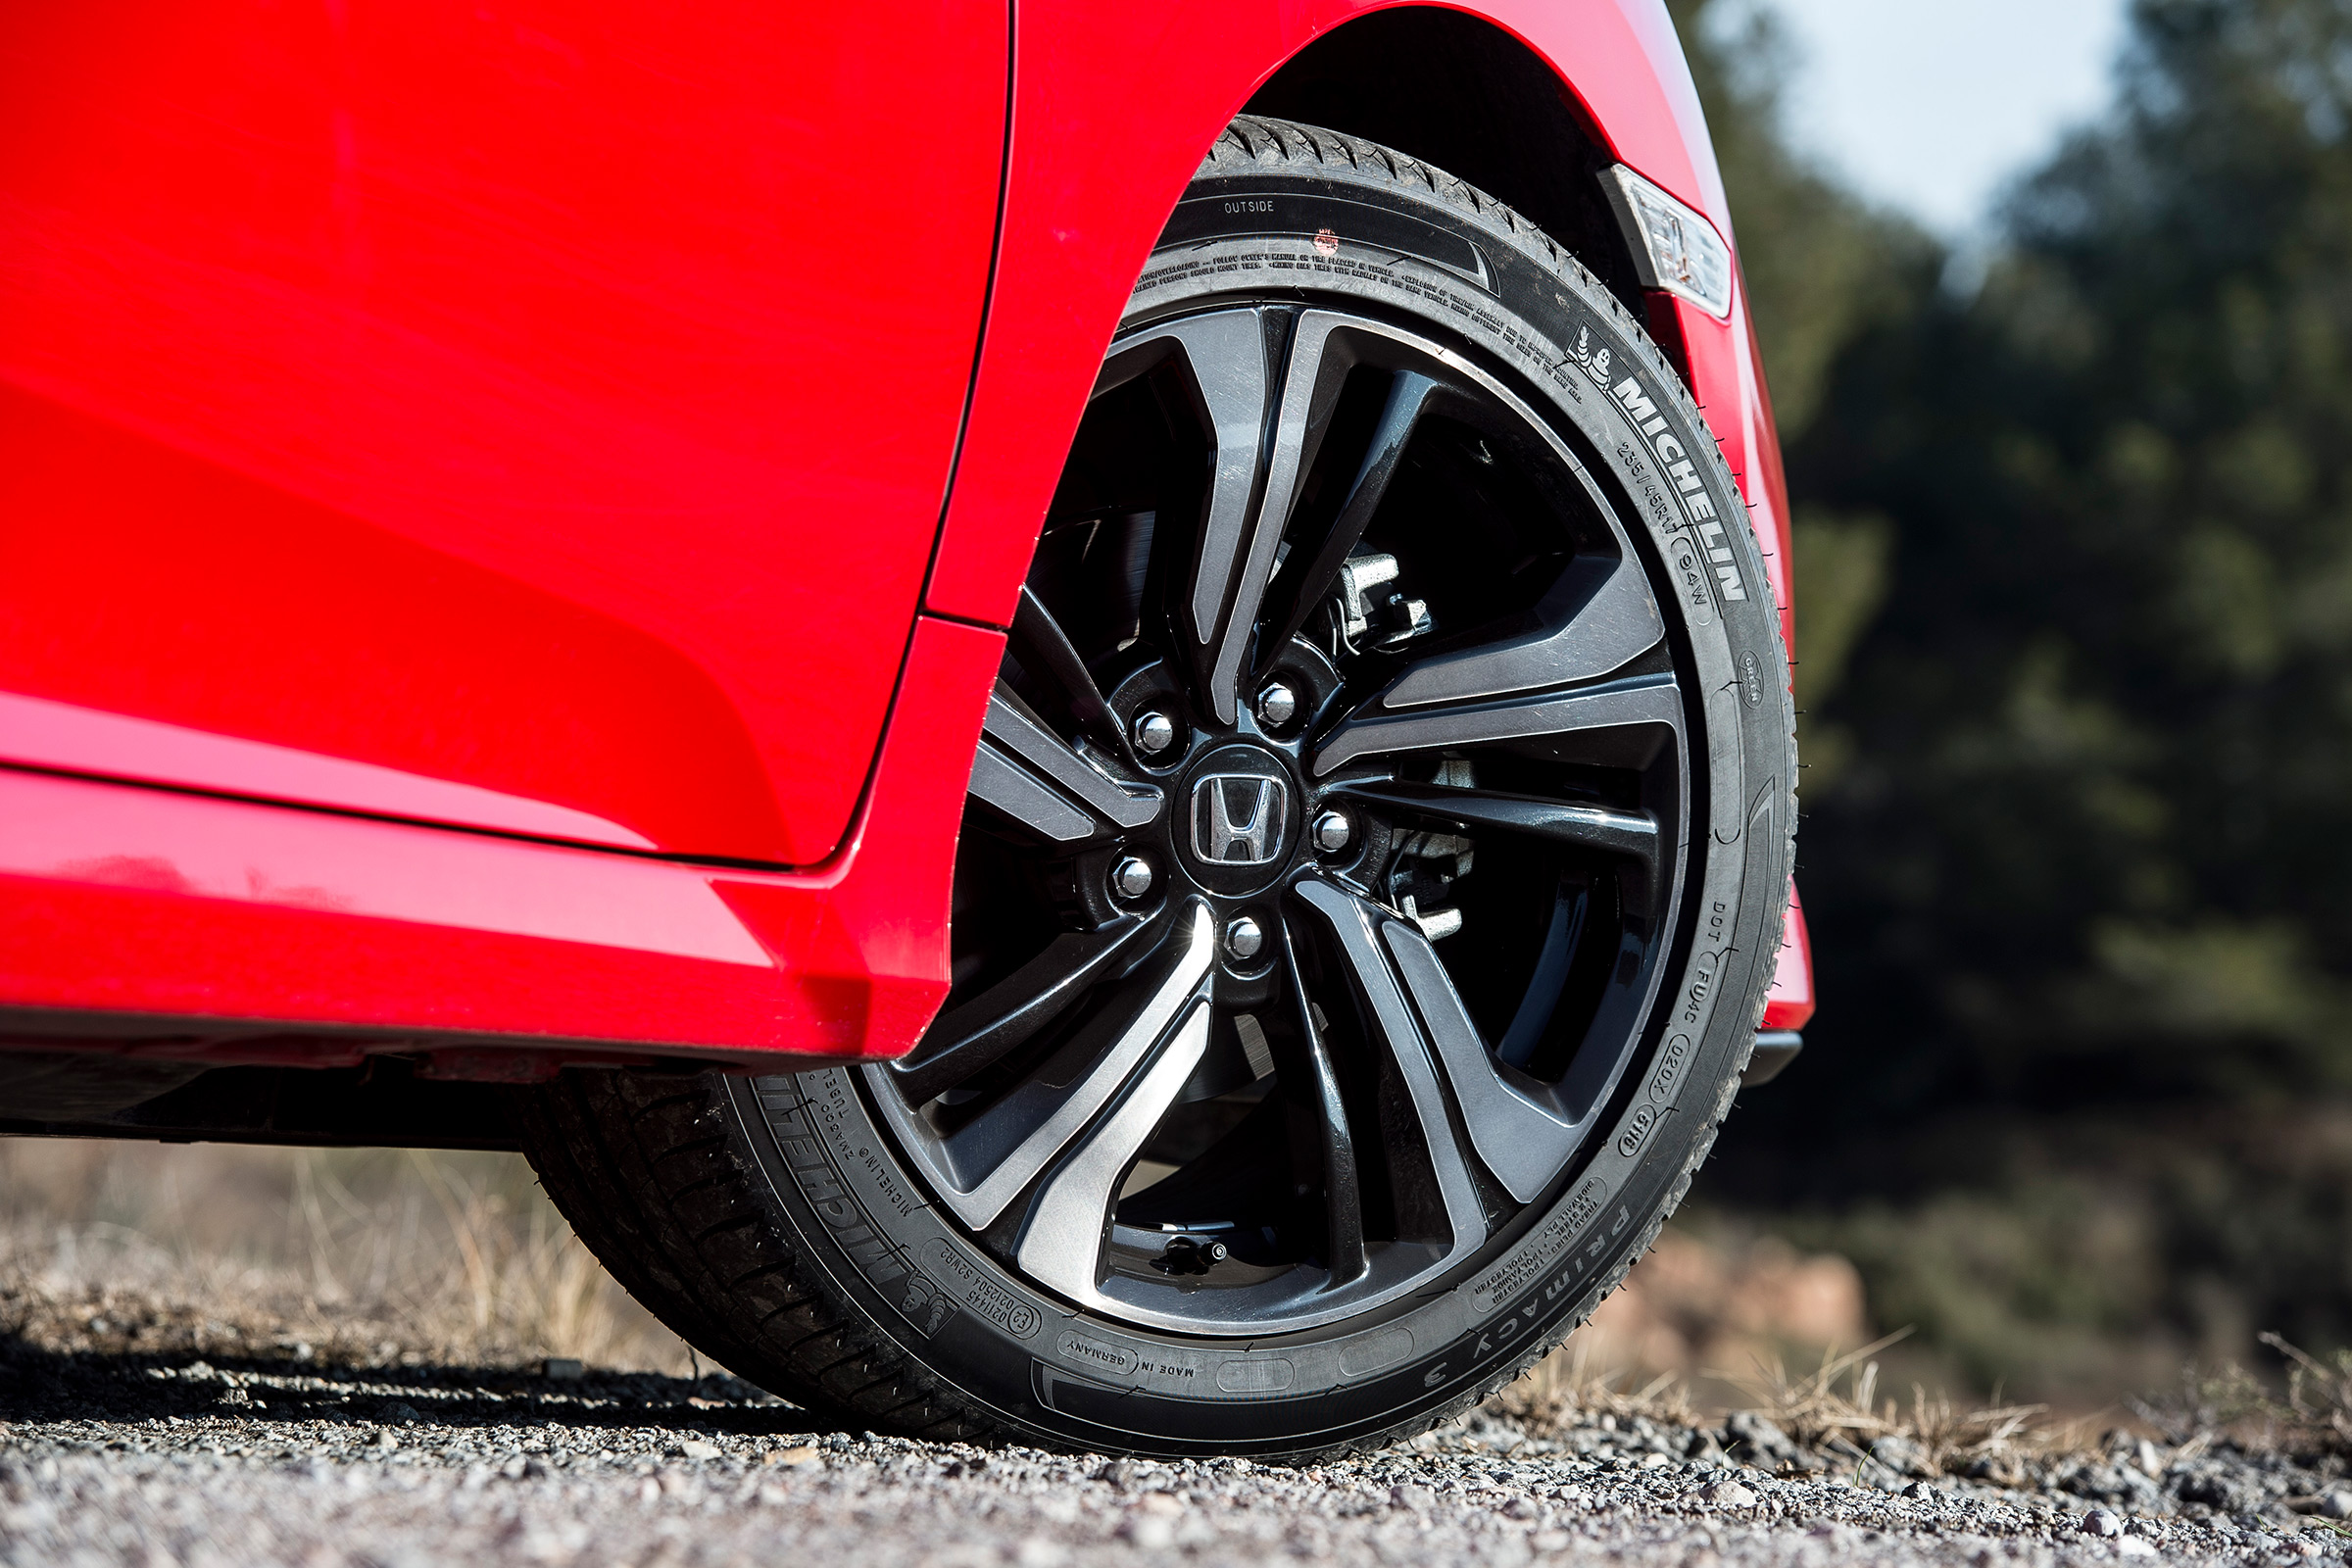 2017 Honda Civic Hatchback Red Exterior View Wheel Trim (Photo 29 of 34)